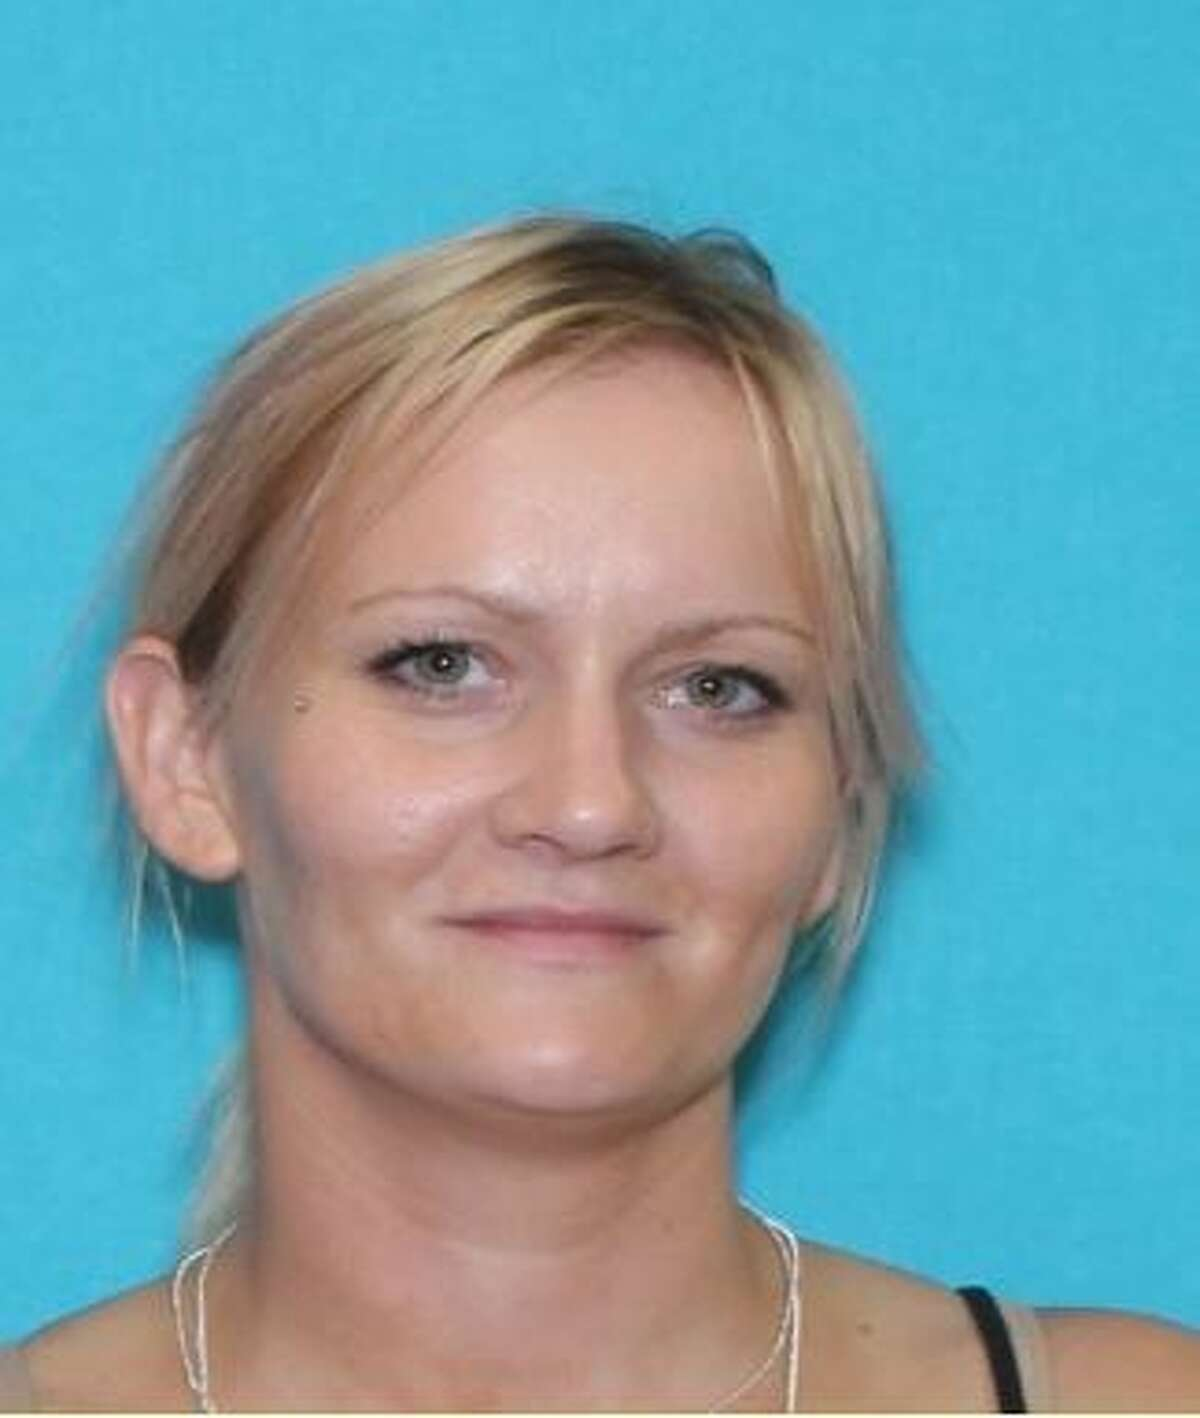 Natalie Nicole Mrizek of Porter is wanted by the Montgomery County Sheriff's Office on a charge of credit card abuse against elderly. Her warrant is active as of Nov. 1, Wednesday.